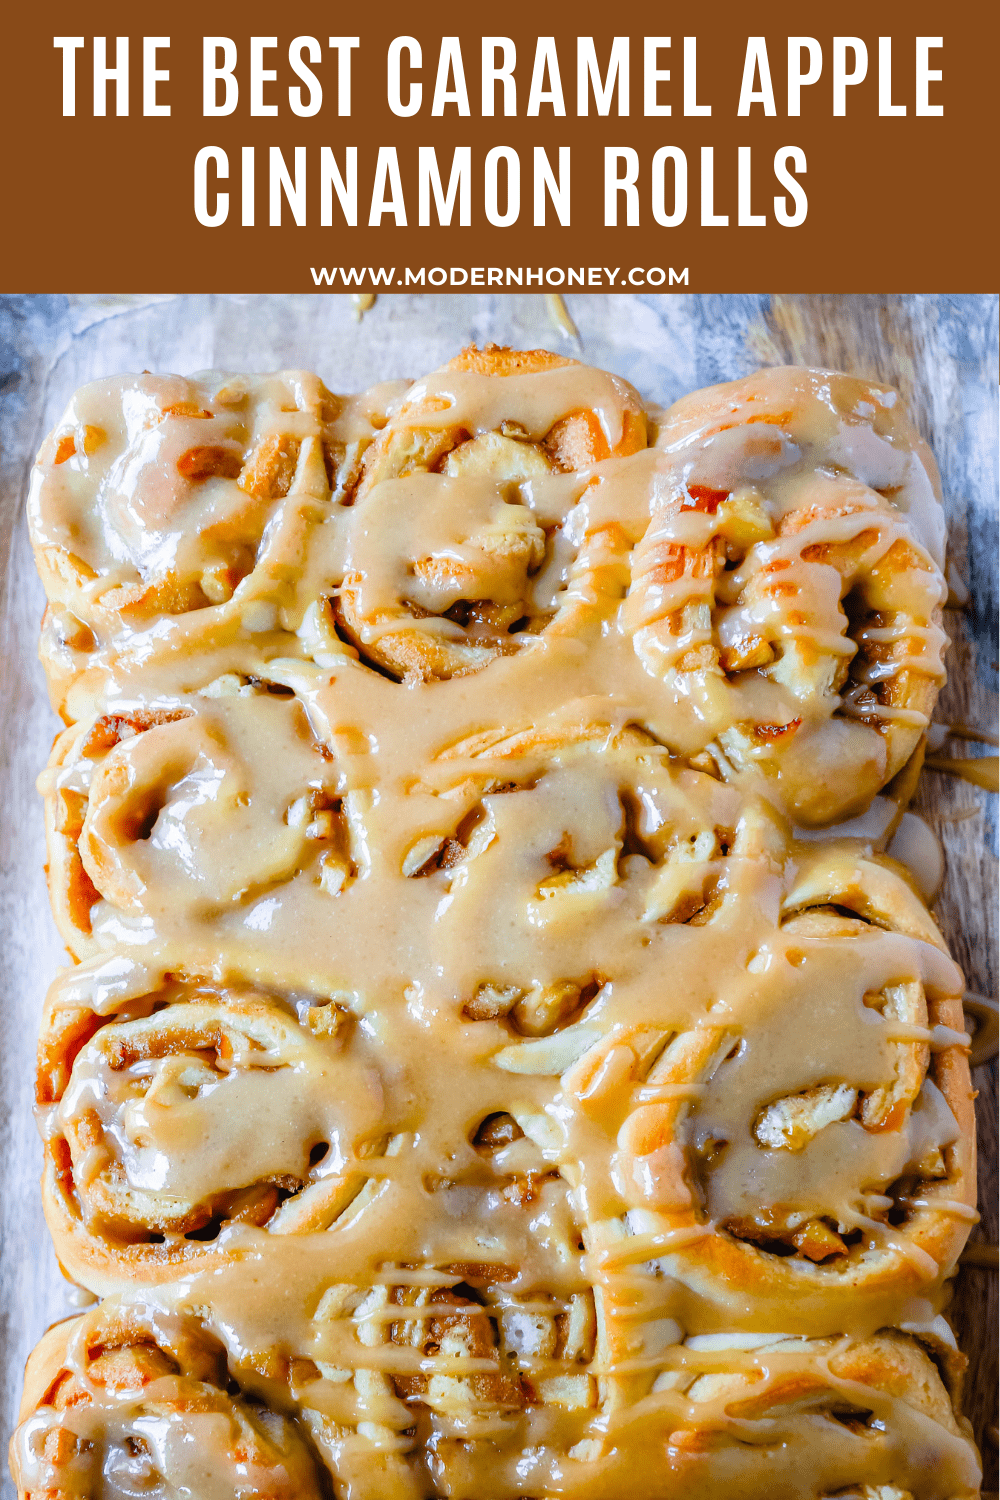 Caramel Apple Cinnamon Rolls Homemade salted caramel paired with tart apples all rolled into and baked in a sweet dough. These Salted Caramel Apple Cinnamon Rolls will knock your socks off! www.modernhoney.com #cinnamonrolls #caramelrolls #caramelapplerolls